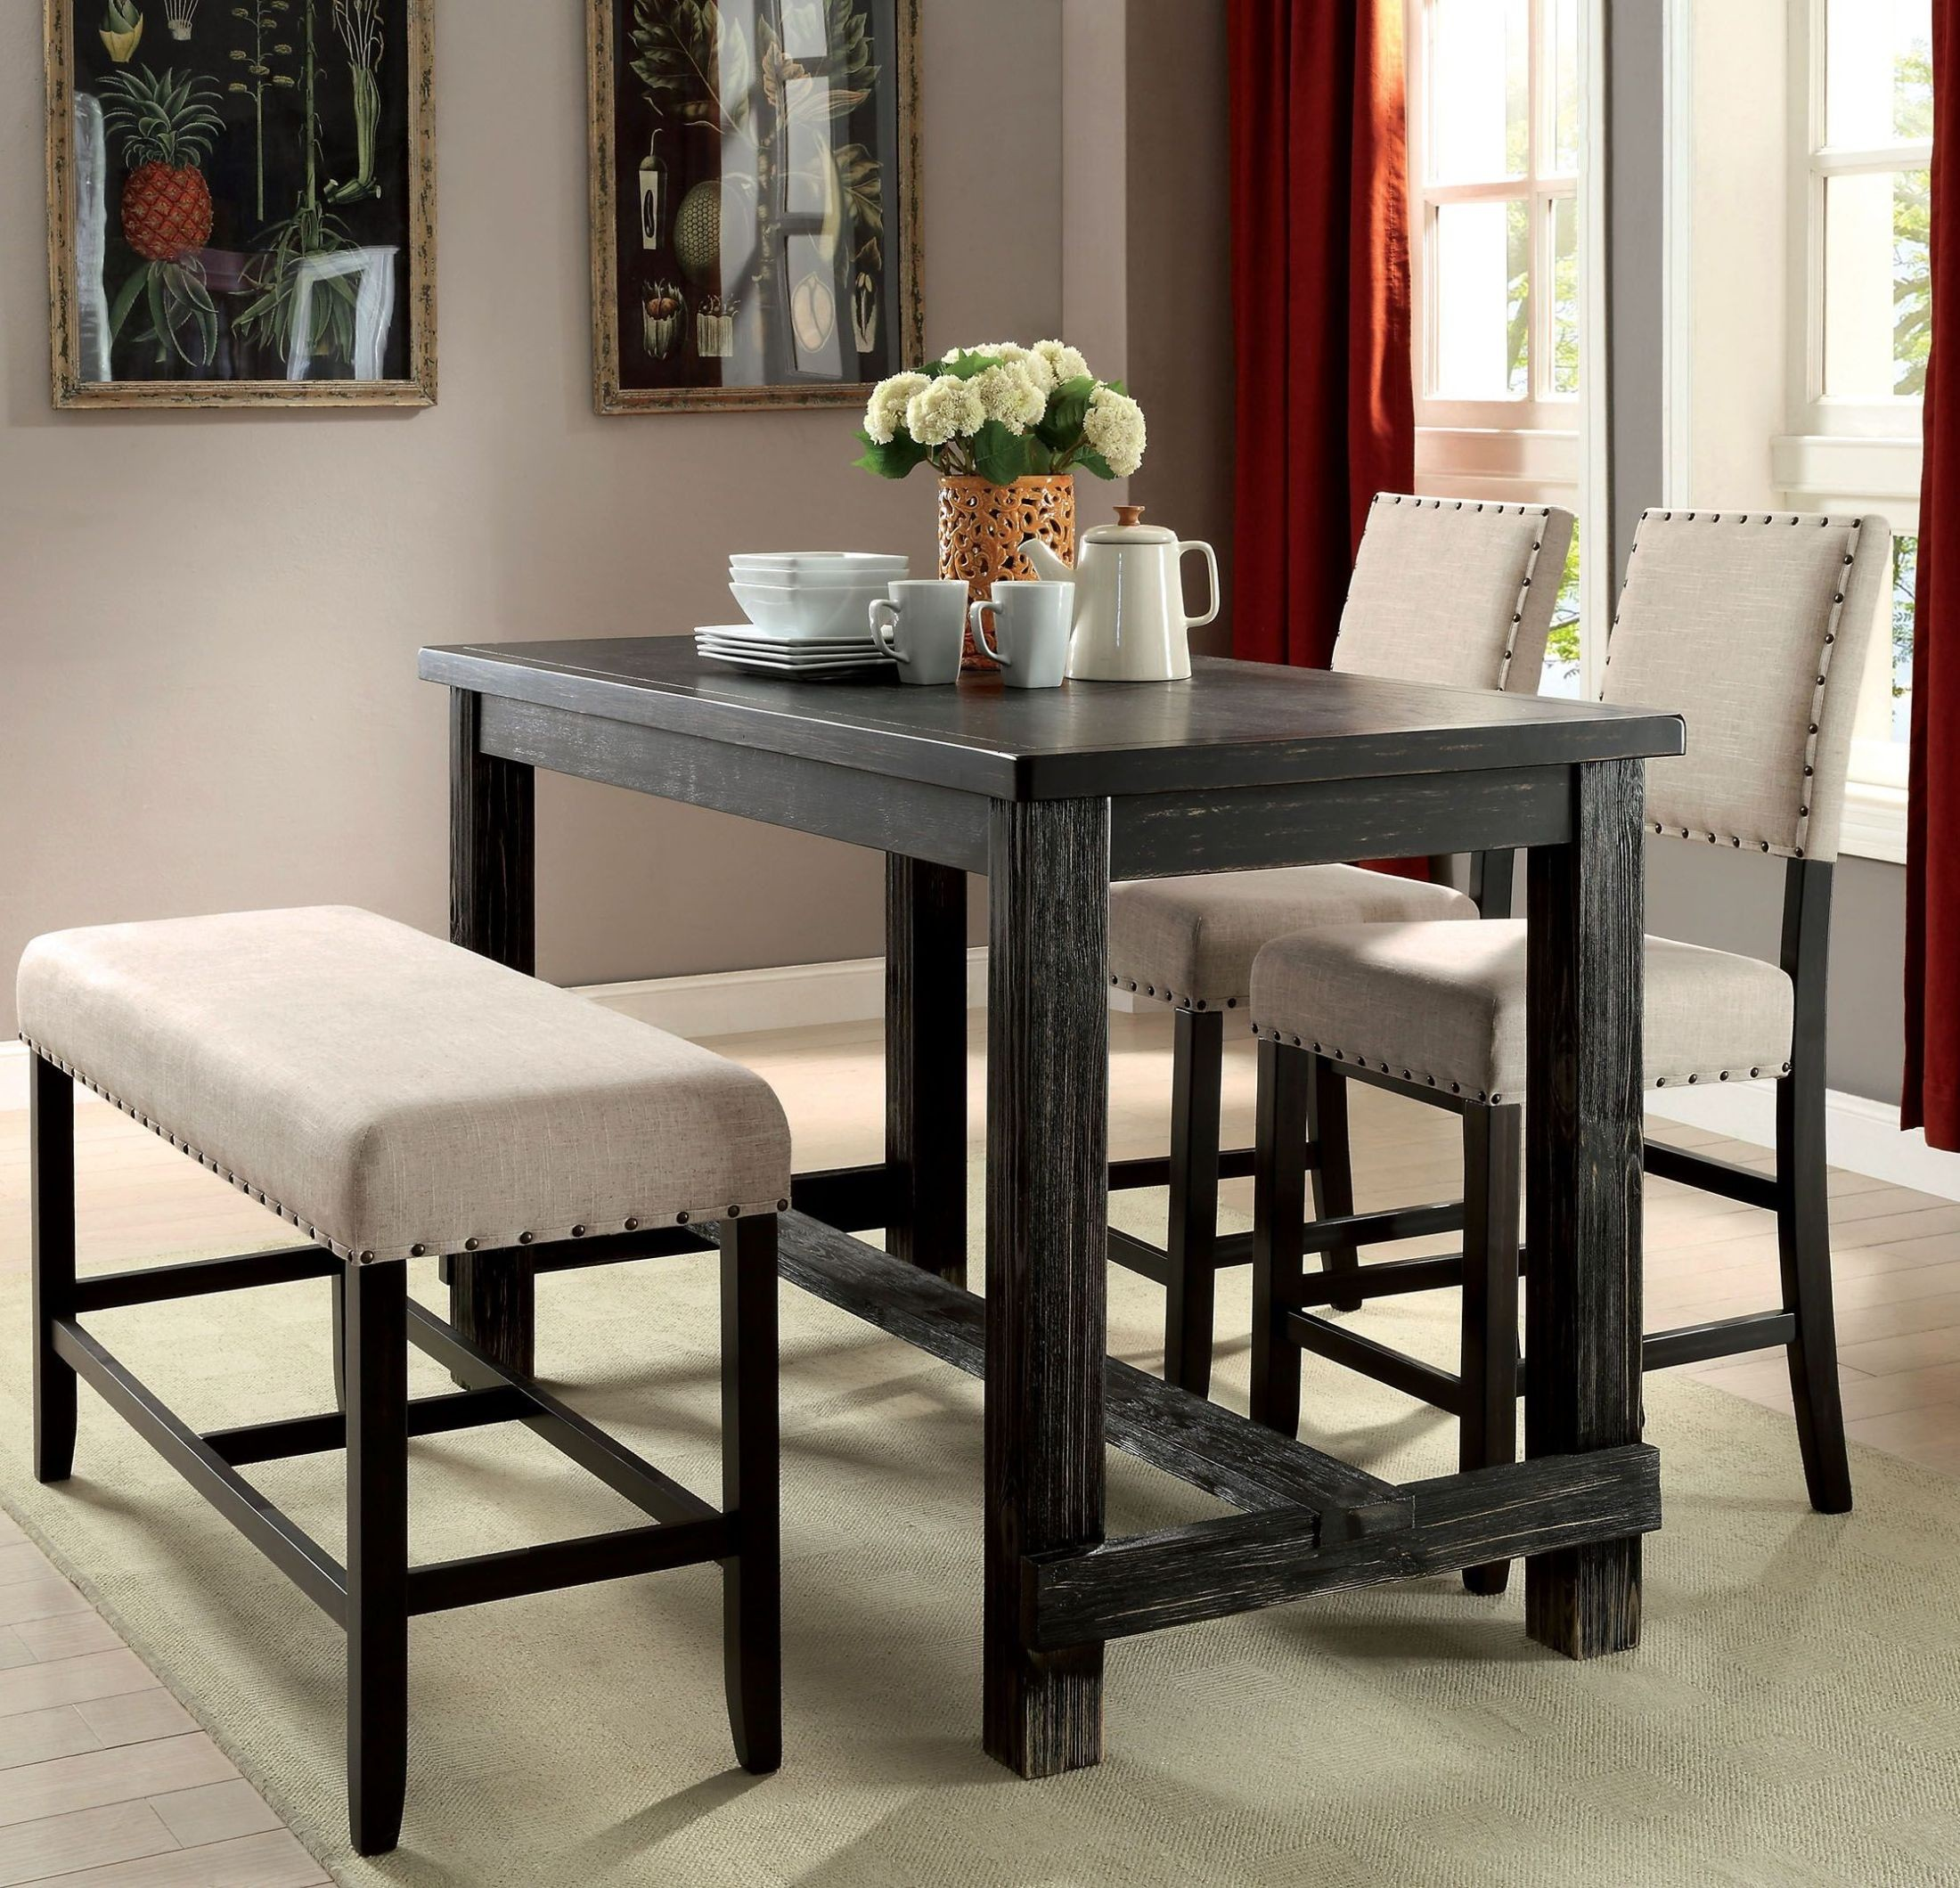 Dining Room Set For 2: Sania Ii Antique Black Counter Height Dining Room Set